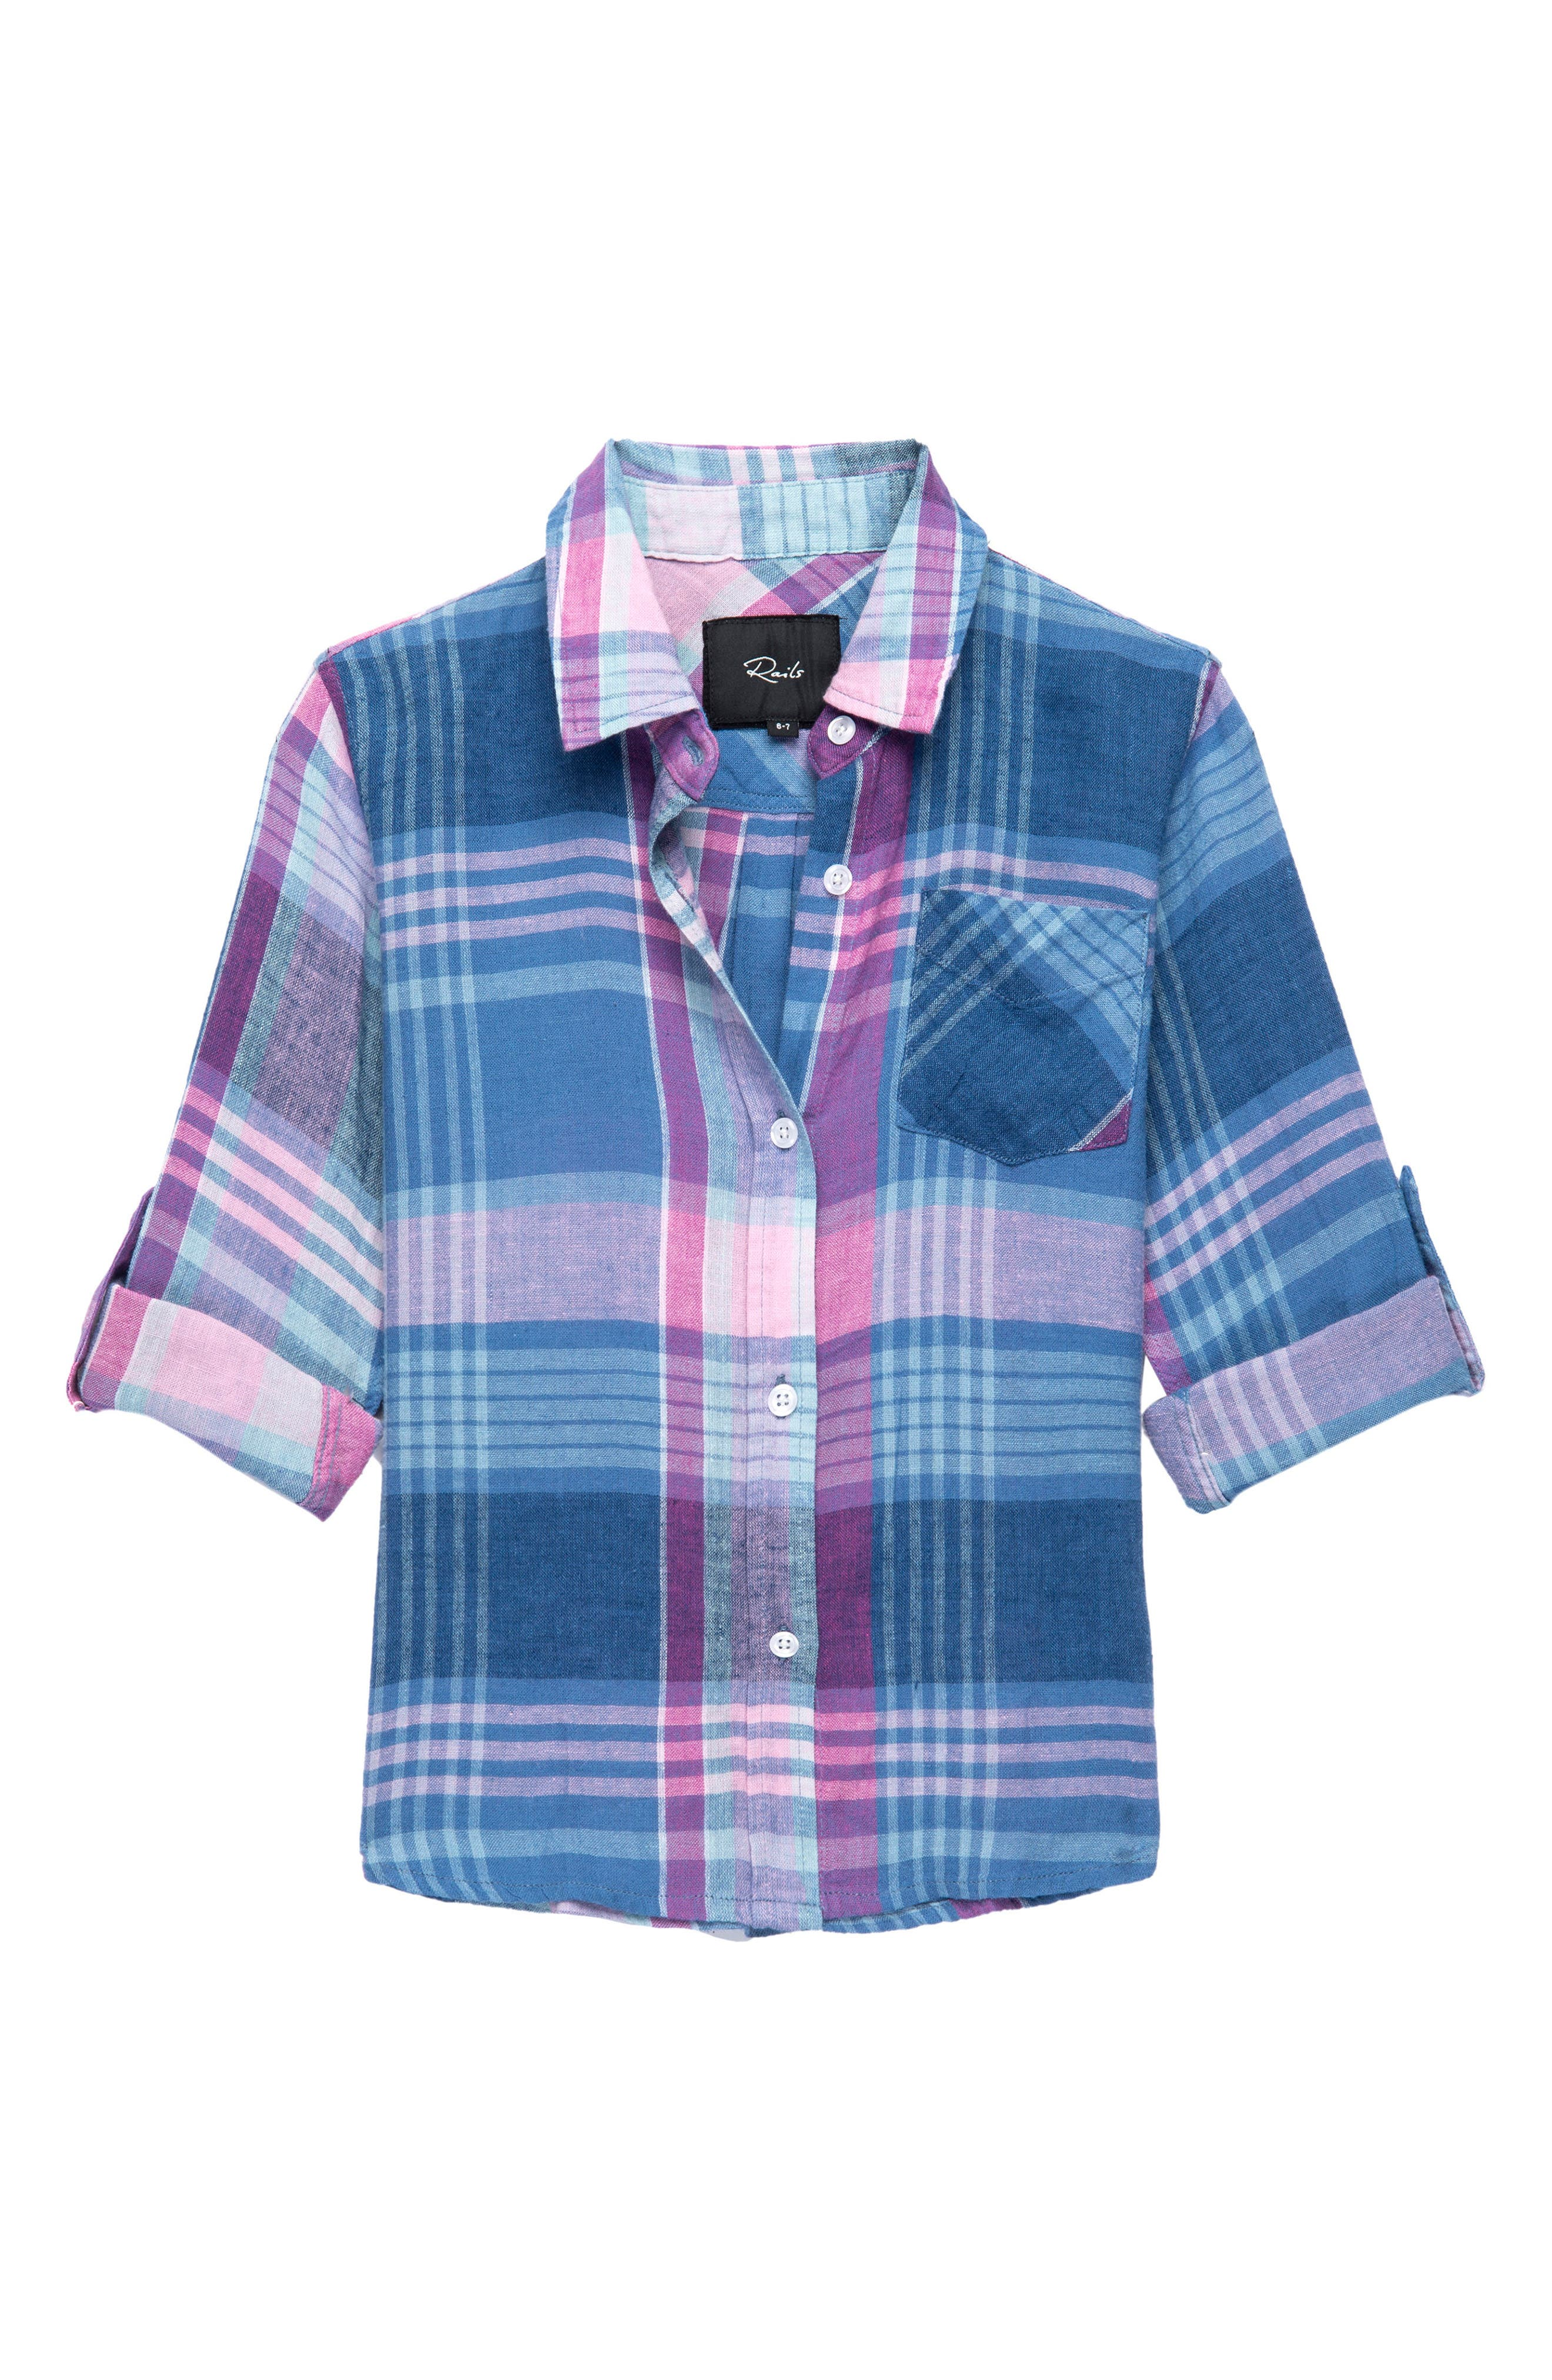 Cora Plaid Shirt,                         Main,                         color, Laguna Coast Azaela